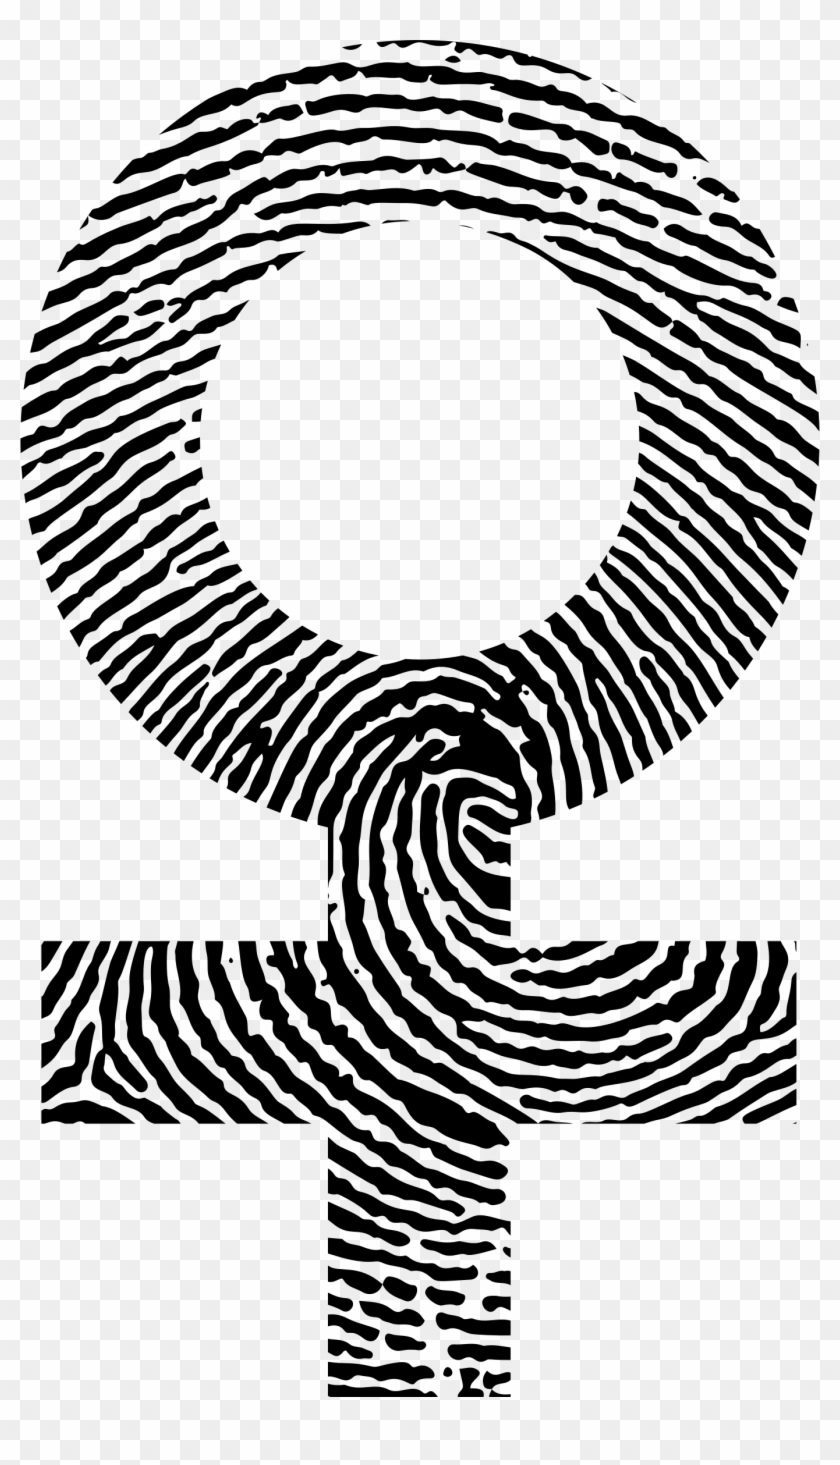 This Free Icons Png Design Of Female Symbol Fingerprint Clipart #158734